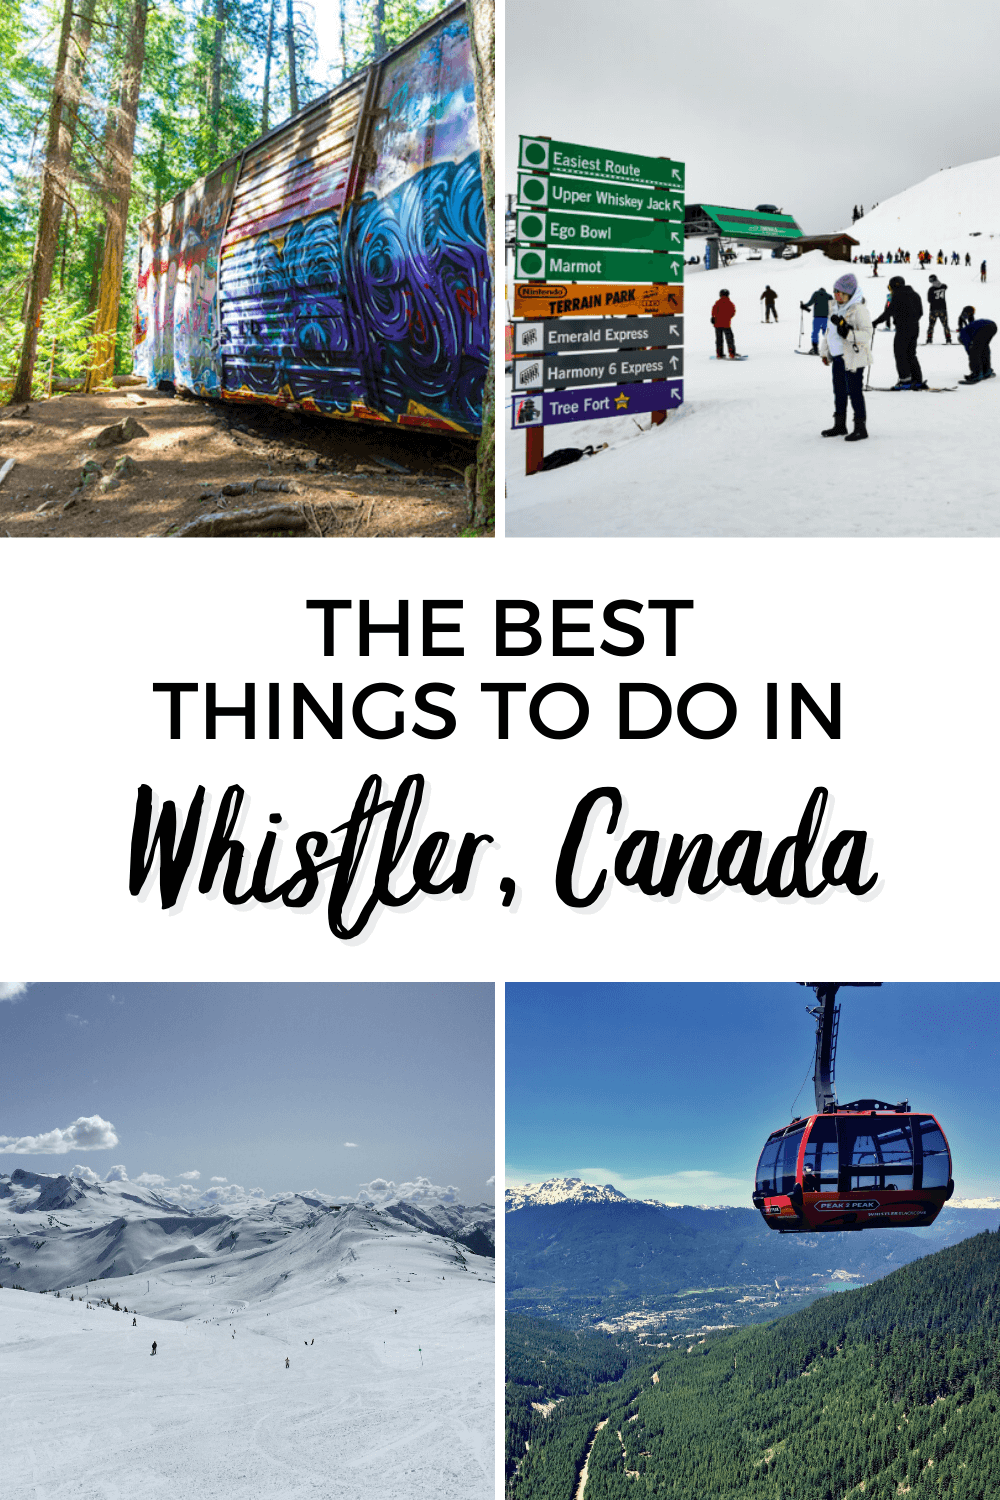 How to Spend an Epic Weekend in Whistler, BC